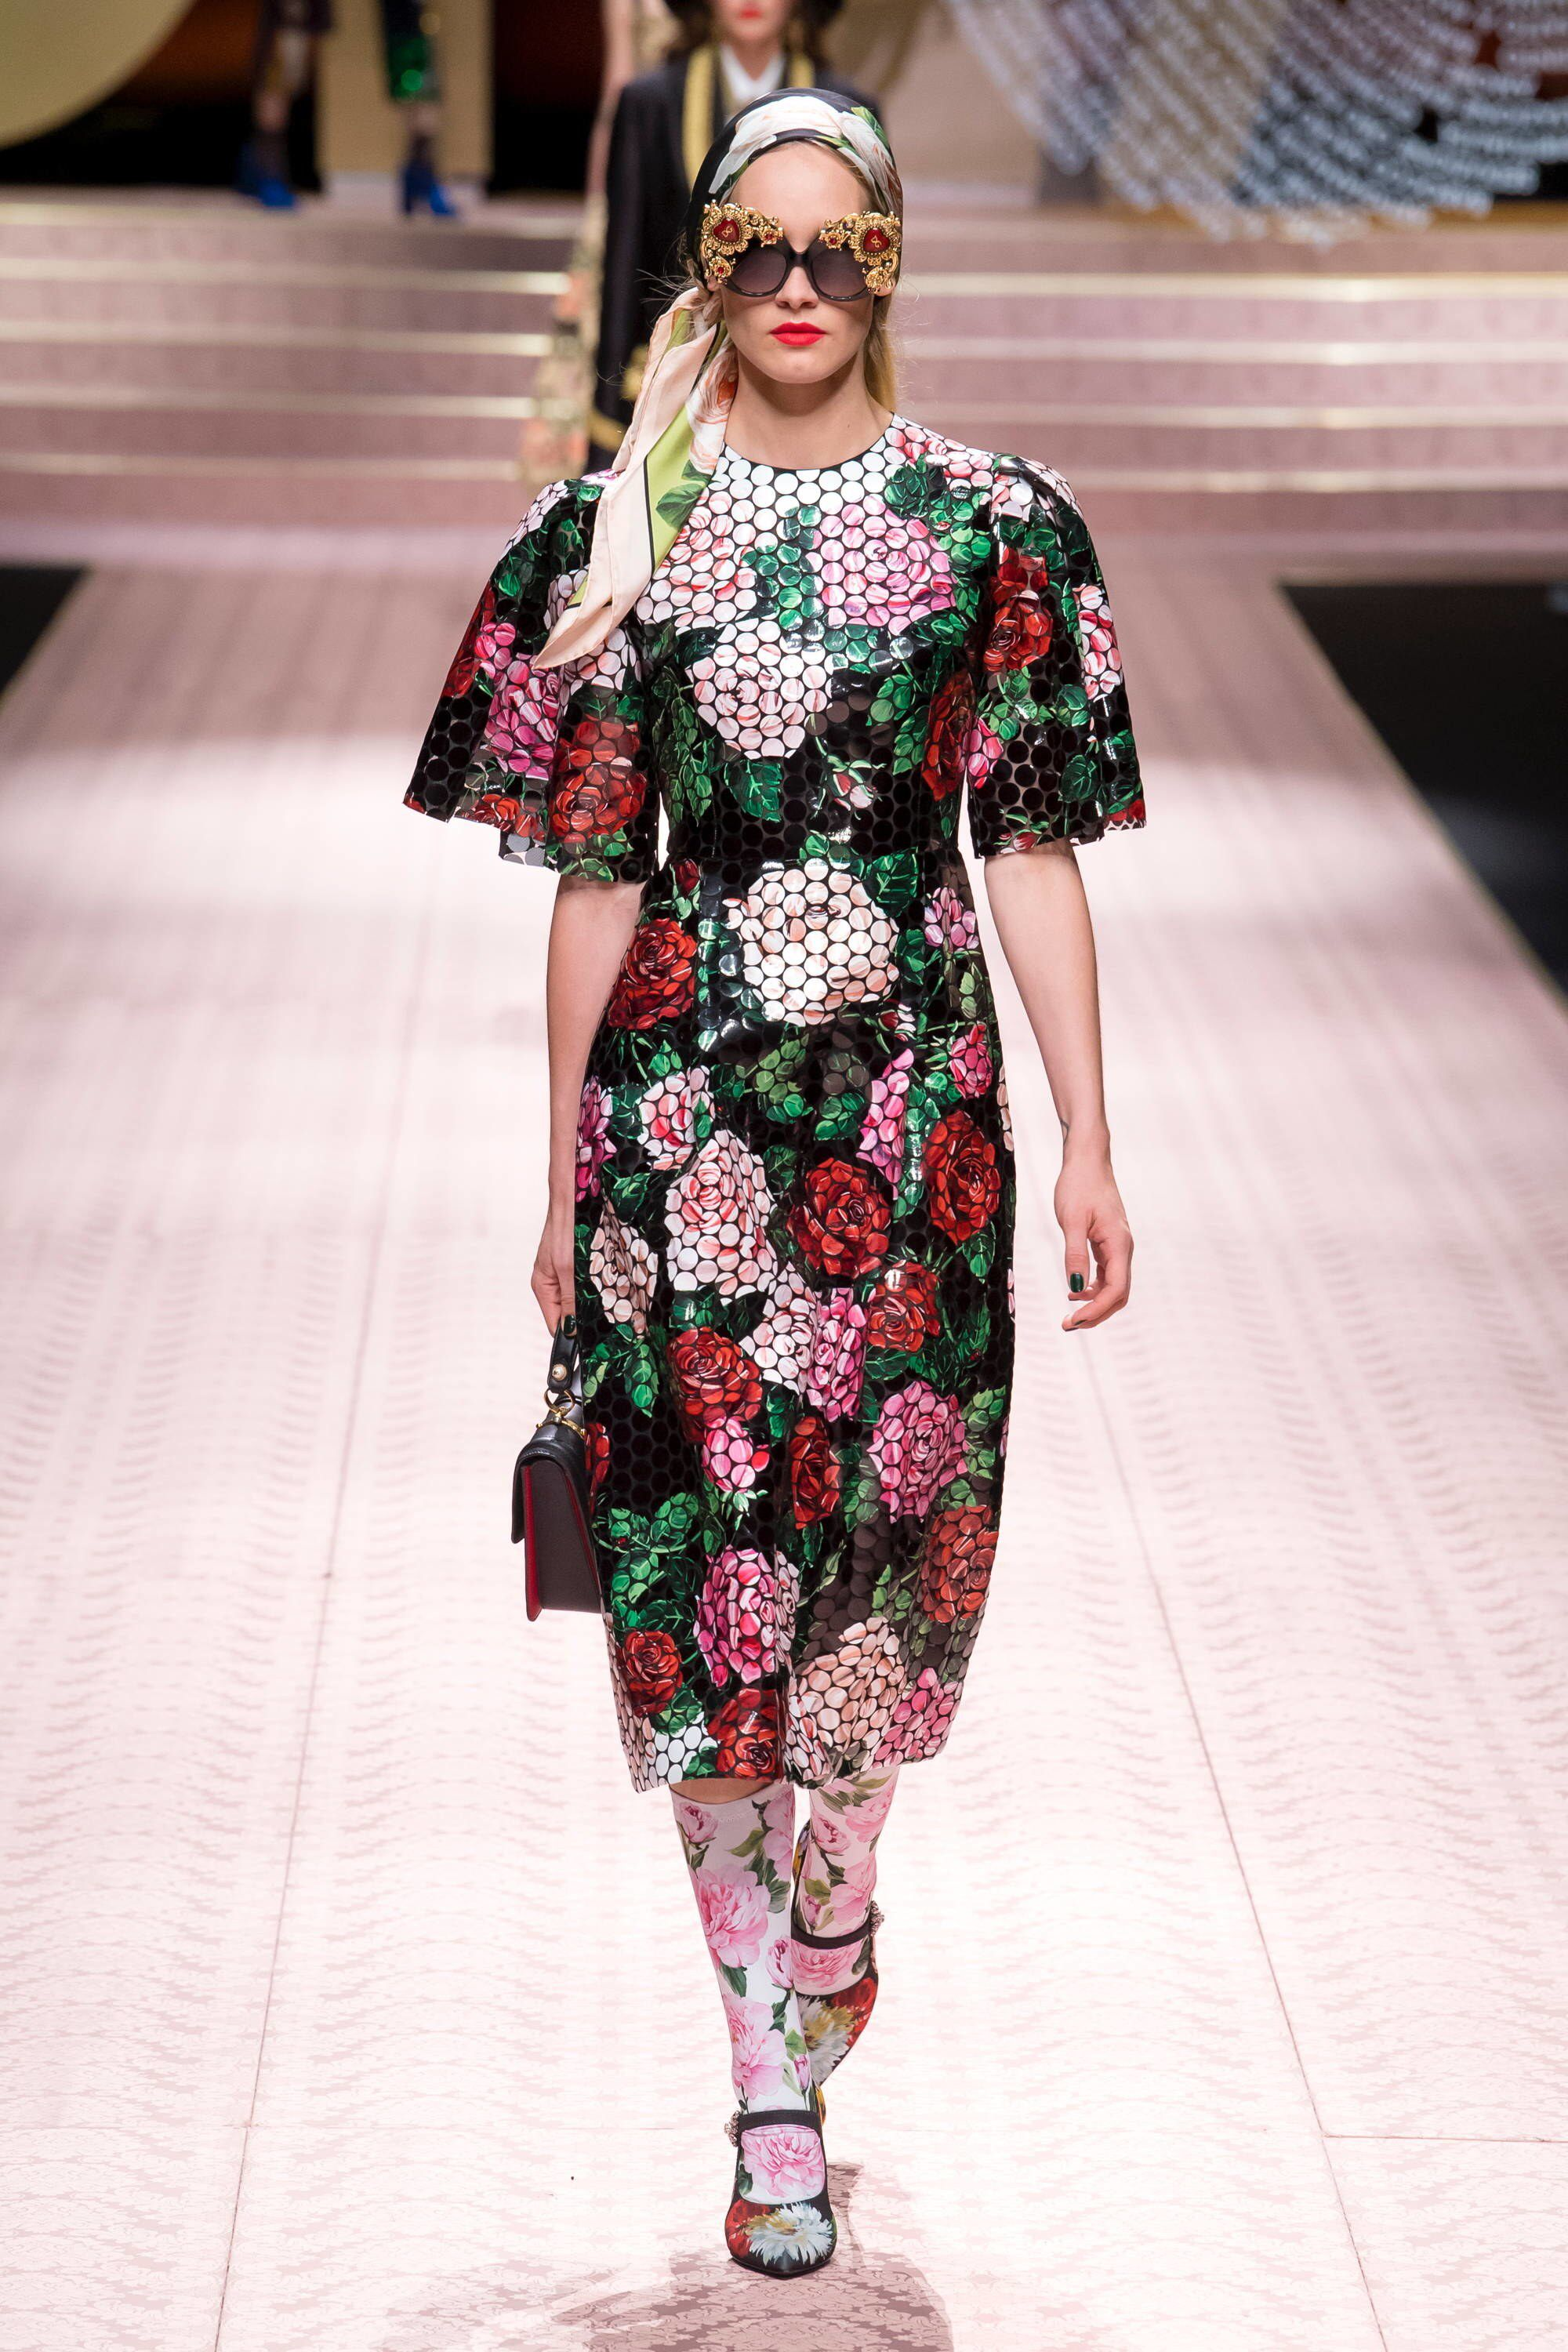 56bd7fe8ec0d3 Dolce   Gabbana Spring 2019 Ready-to-Wear Fashion Show Collection  See the  complete Dolce   Gabbana Spring 2019 Ready-to-Wear collection. Look 142